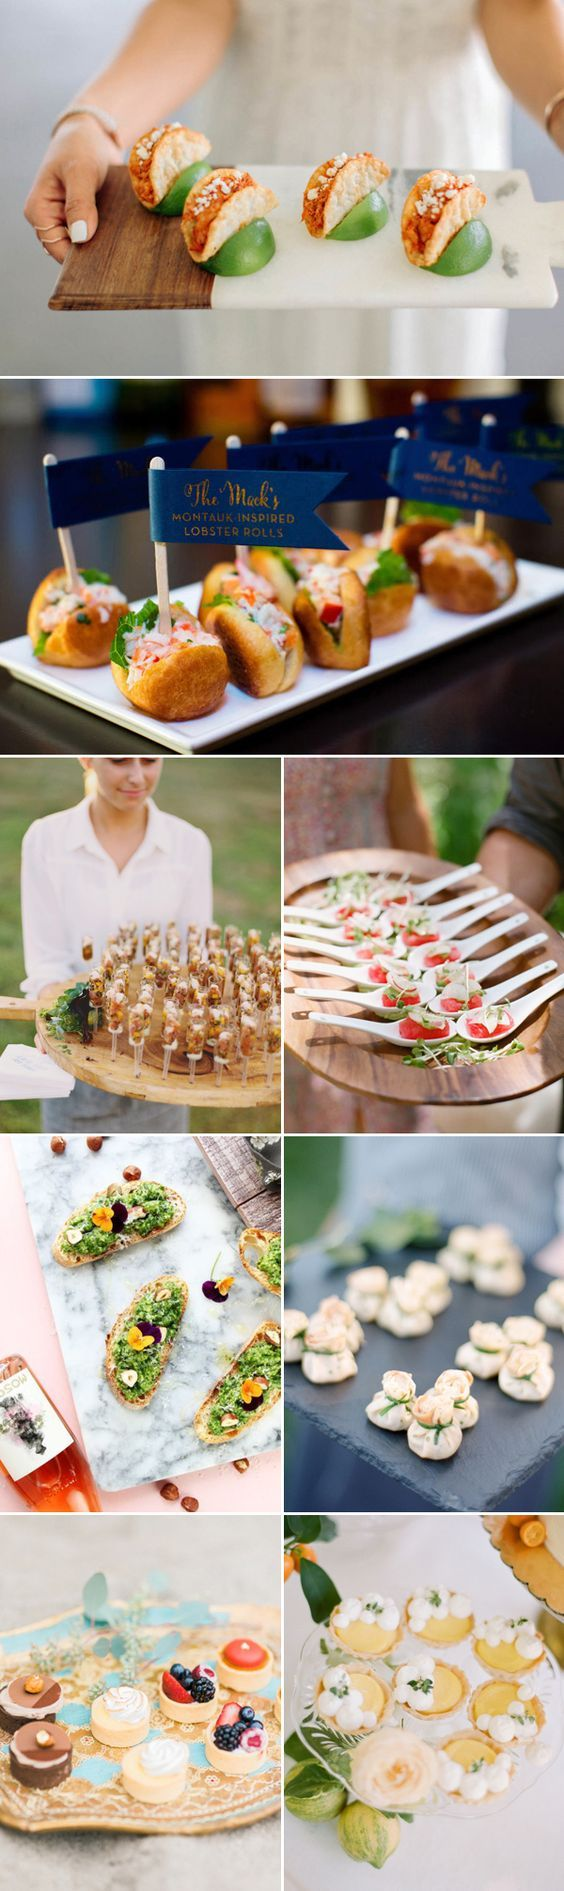 Attention Foodies!Let's be realistic! For many of your guests, one of the most memorable parts of the wedding is the food.  Here Comes 2016 Wedding Food Trends.